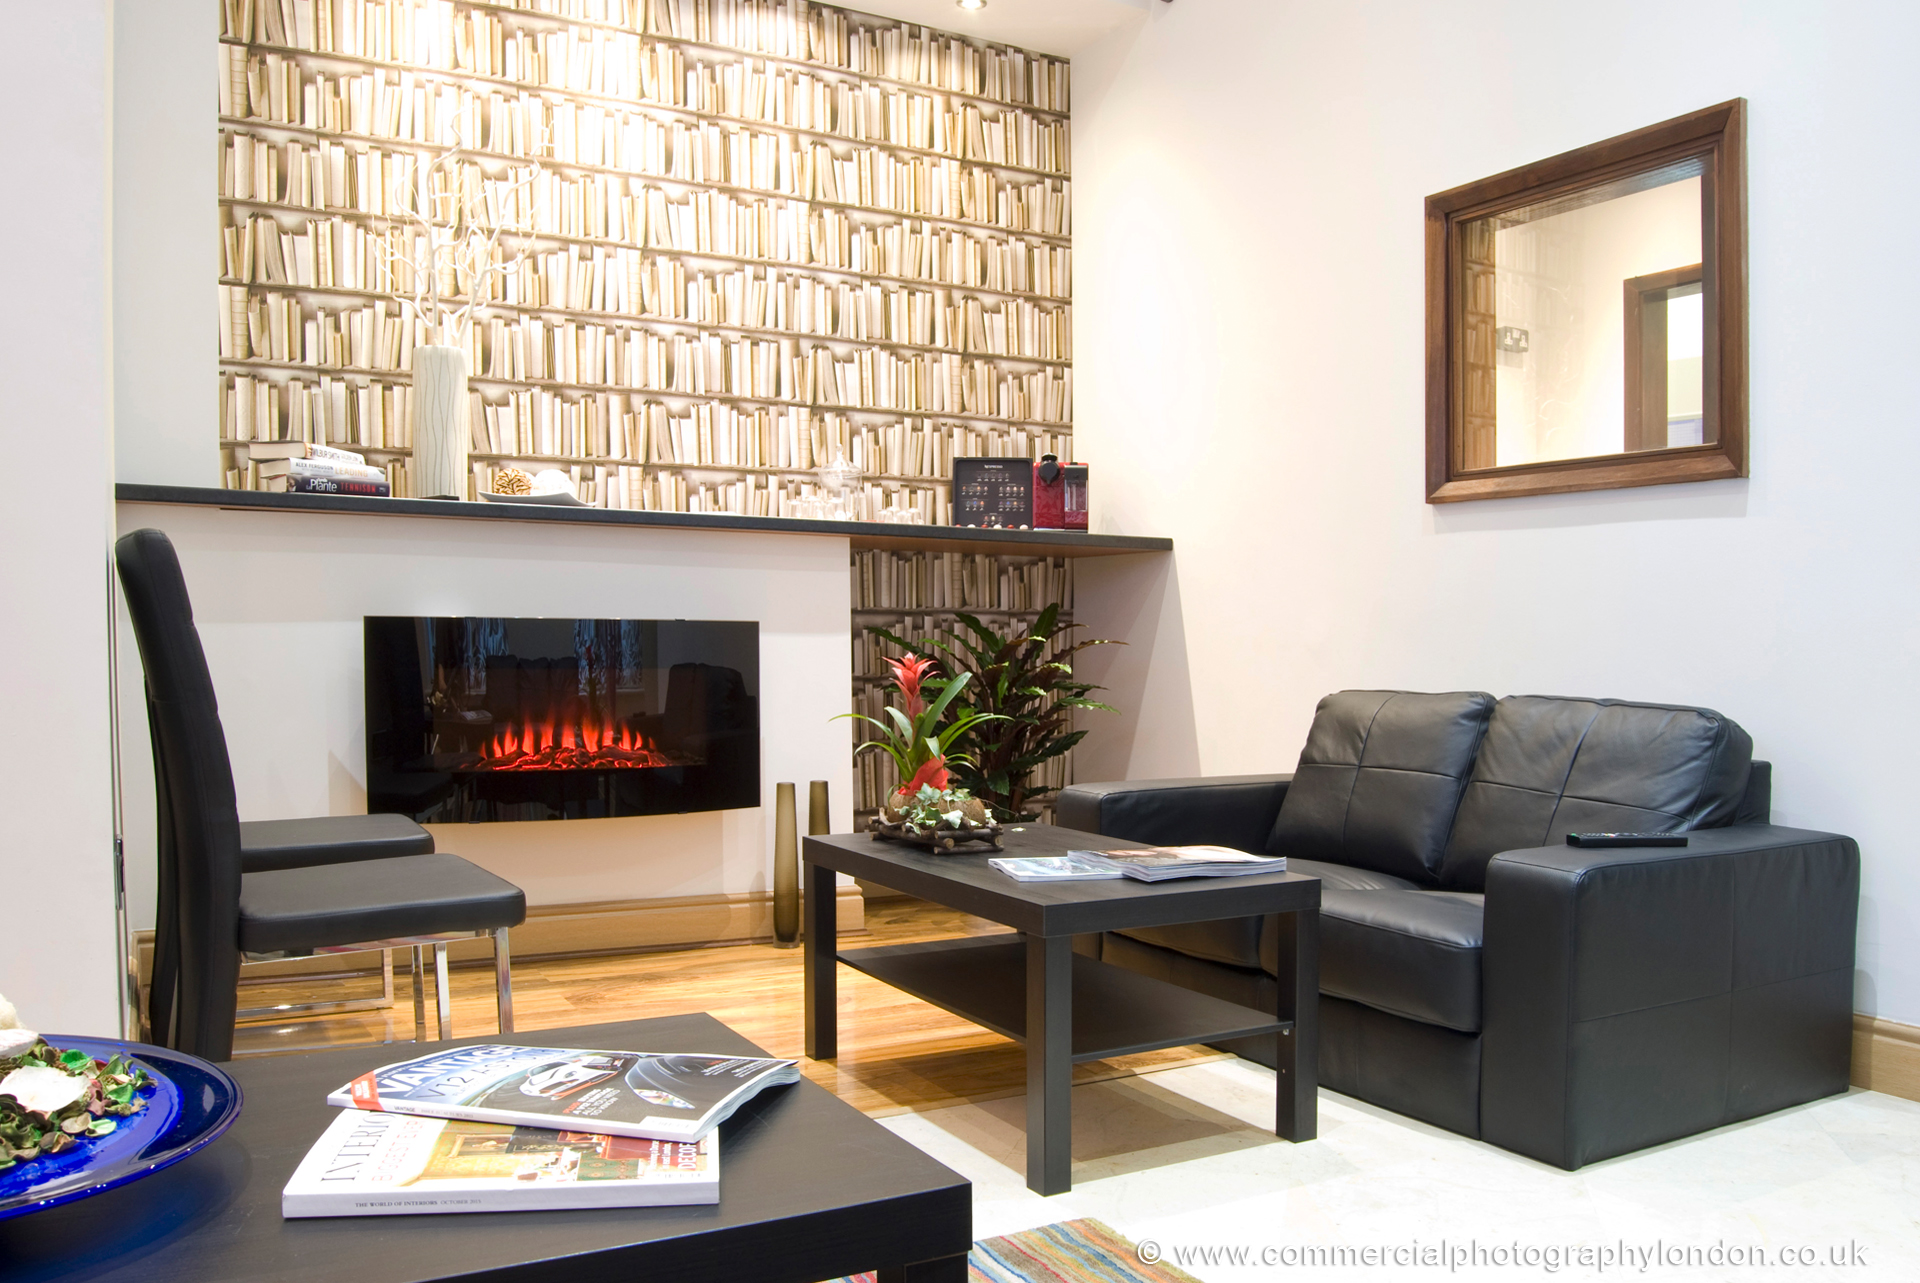 Interiors Photographer London portfolio photo 4325 by Commercial Photography London